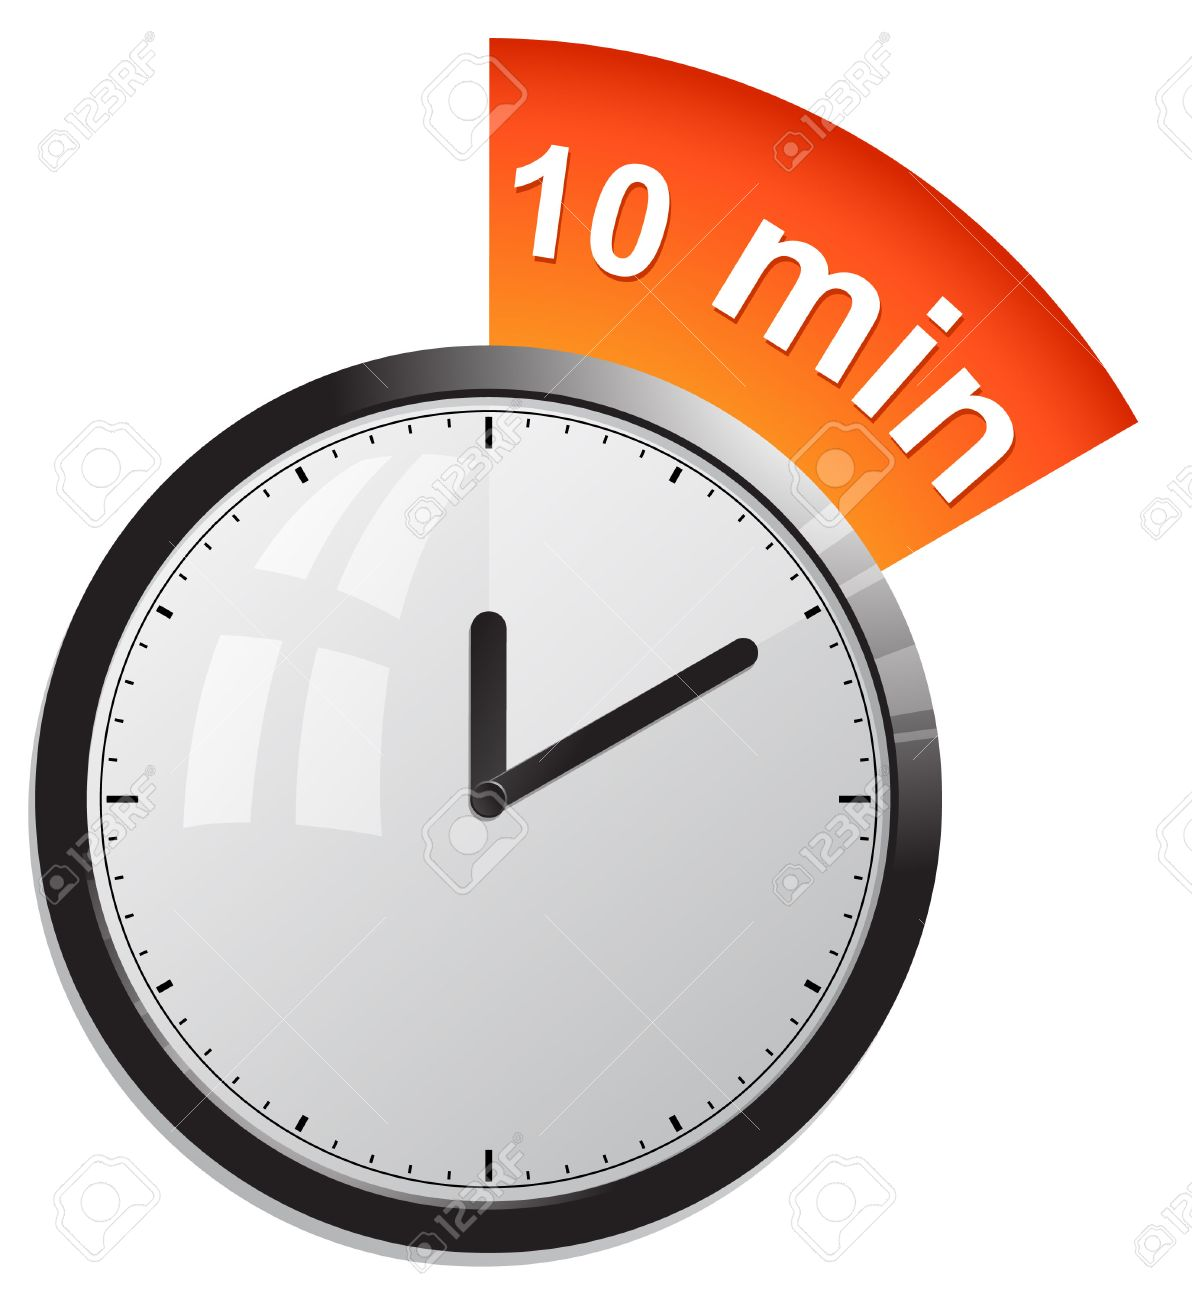 Clock timer 10 minutes royalty free cliparts vectors and stock clock timer 10 minutes stock vector 28133888 publicscrutiny Image collections